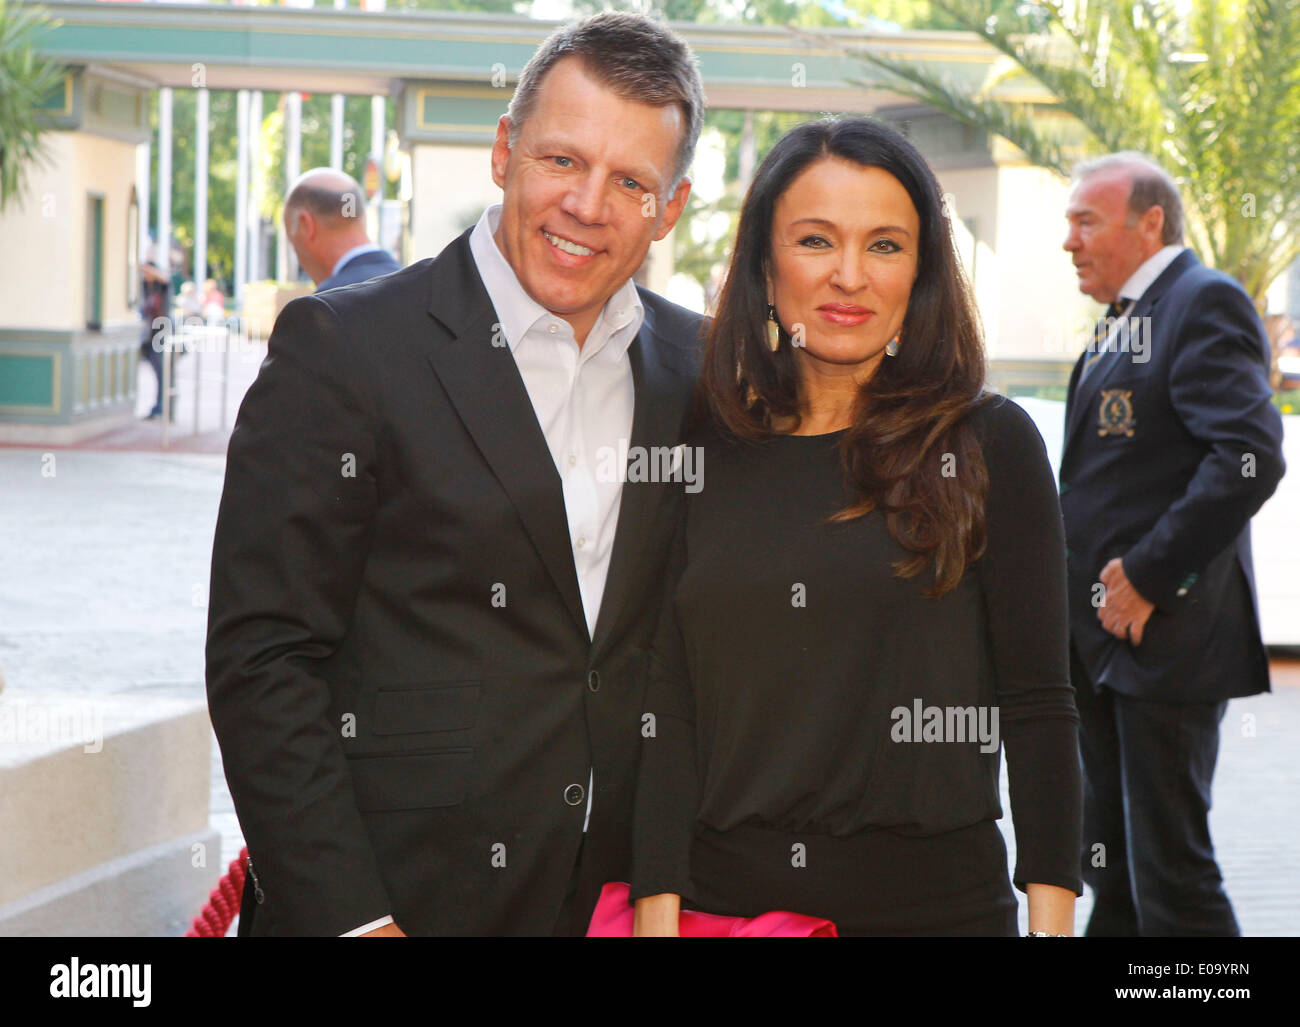 Herbolzheim, Germany - May 5, 2014: Eagles Charity Golf Cup and Gala at Golfclub Breisgau and Europa Park, Rust with Axel Kahn and wife Lena Credit:  dpa picture alliance/Alamy Live News - Stock Image